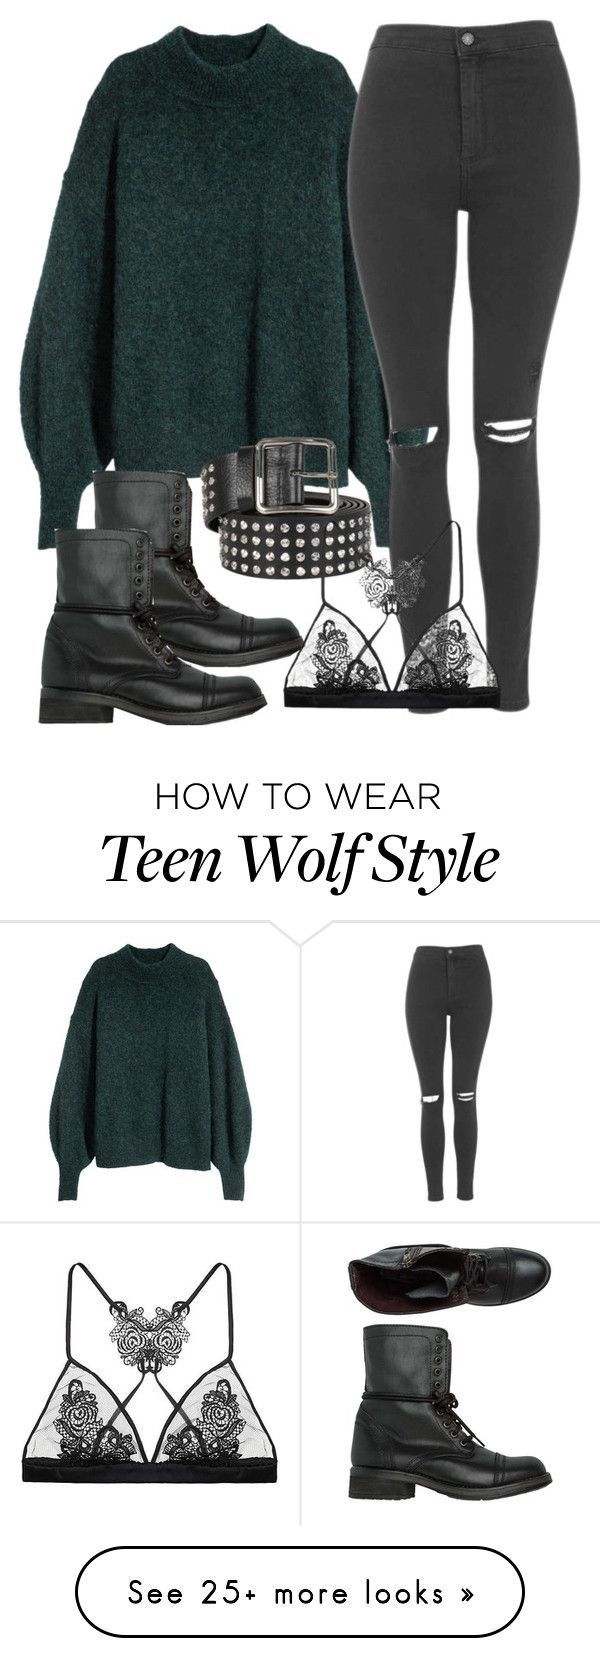 """Derek Inspired Outfit - Teen Wolf"" by clawsandclothes on Polyvore featuring Steve Madden, Topshop, Alexander McQueen and Fleur of England"